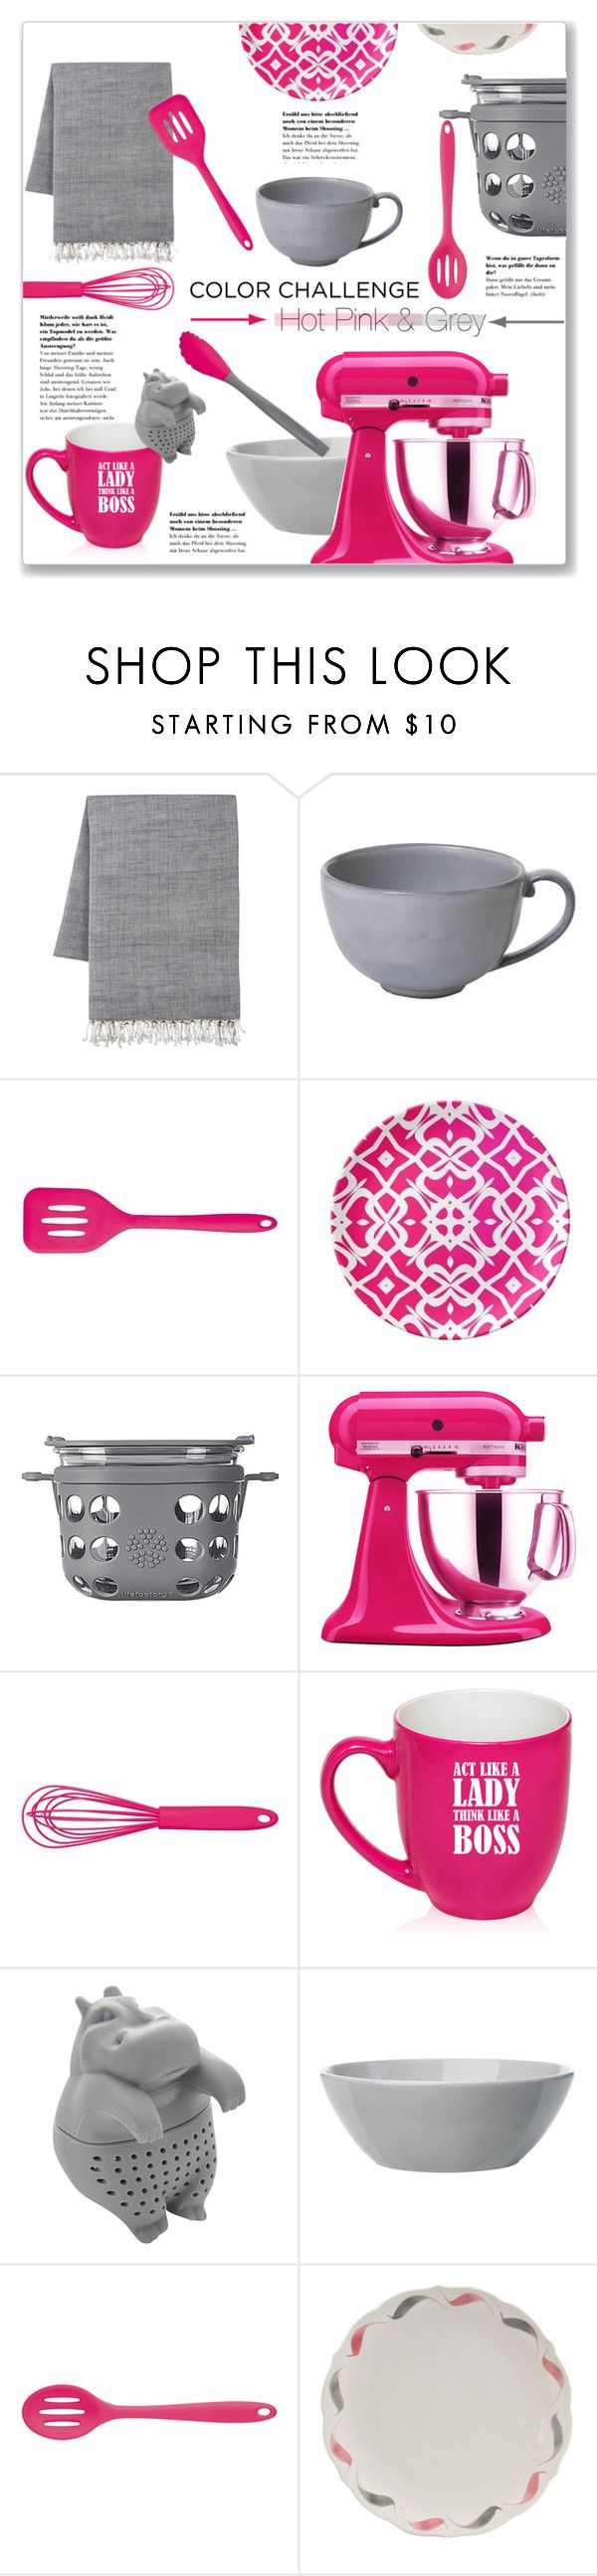 """""""Hot Pink & Grey Kitchen Accessories"""" by kellylynne68 ❤ liked on Polyvore featuring interior, interiors, interior design, home, home decor, interior decorating, Juliska, Kitchen Craft Colourworks, Lifefactory and KitchenAid"""